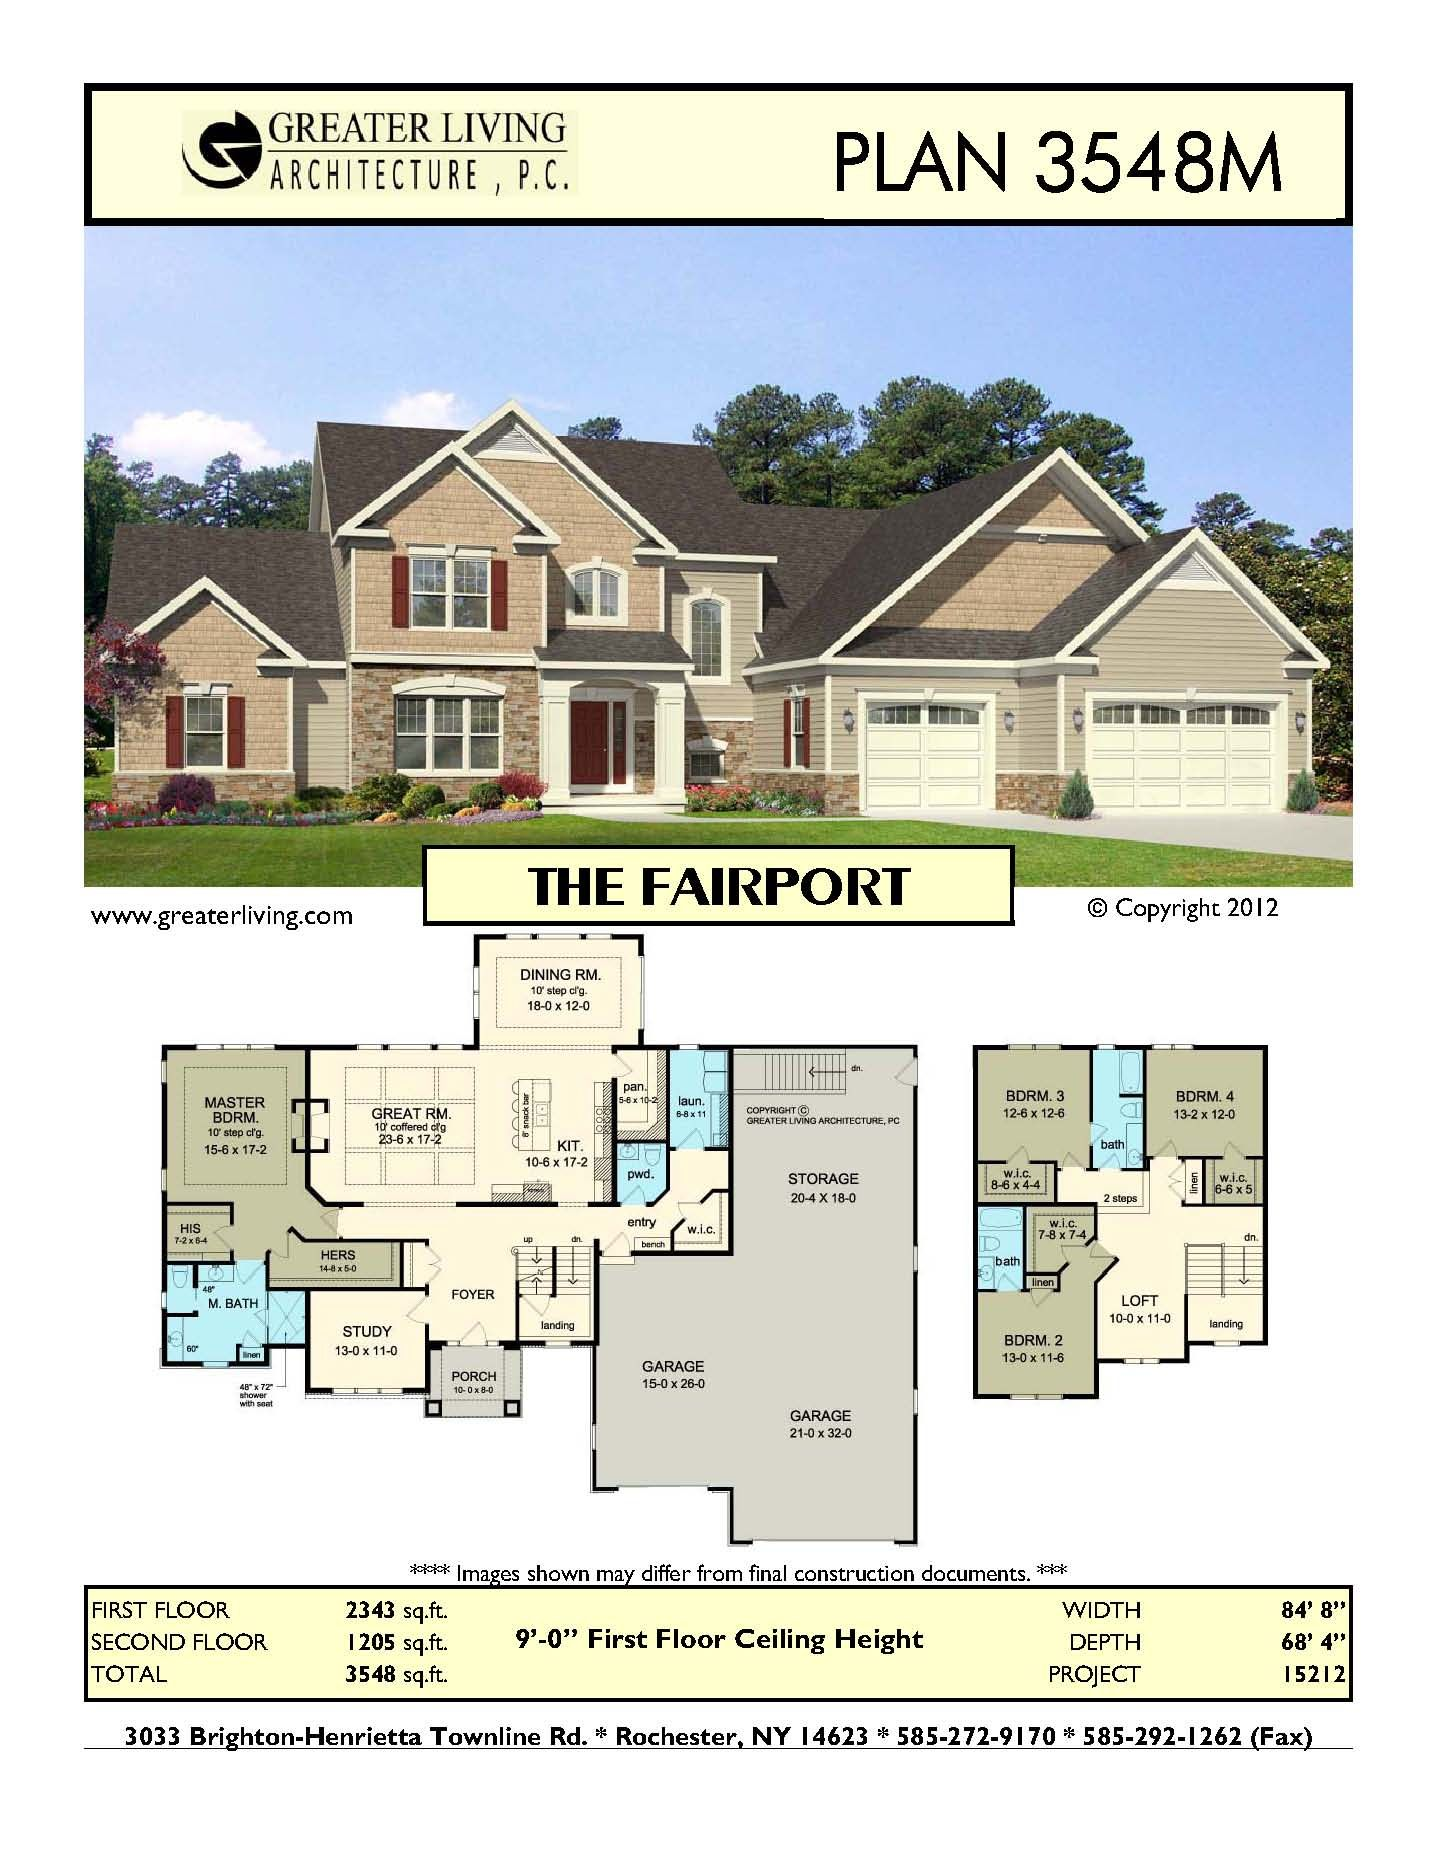 plan 3548m the fairport house plans two story house plans 1st